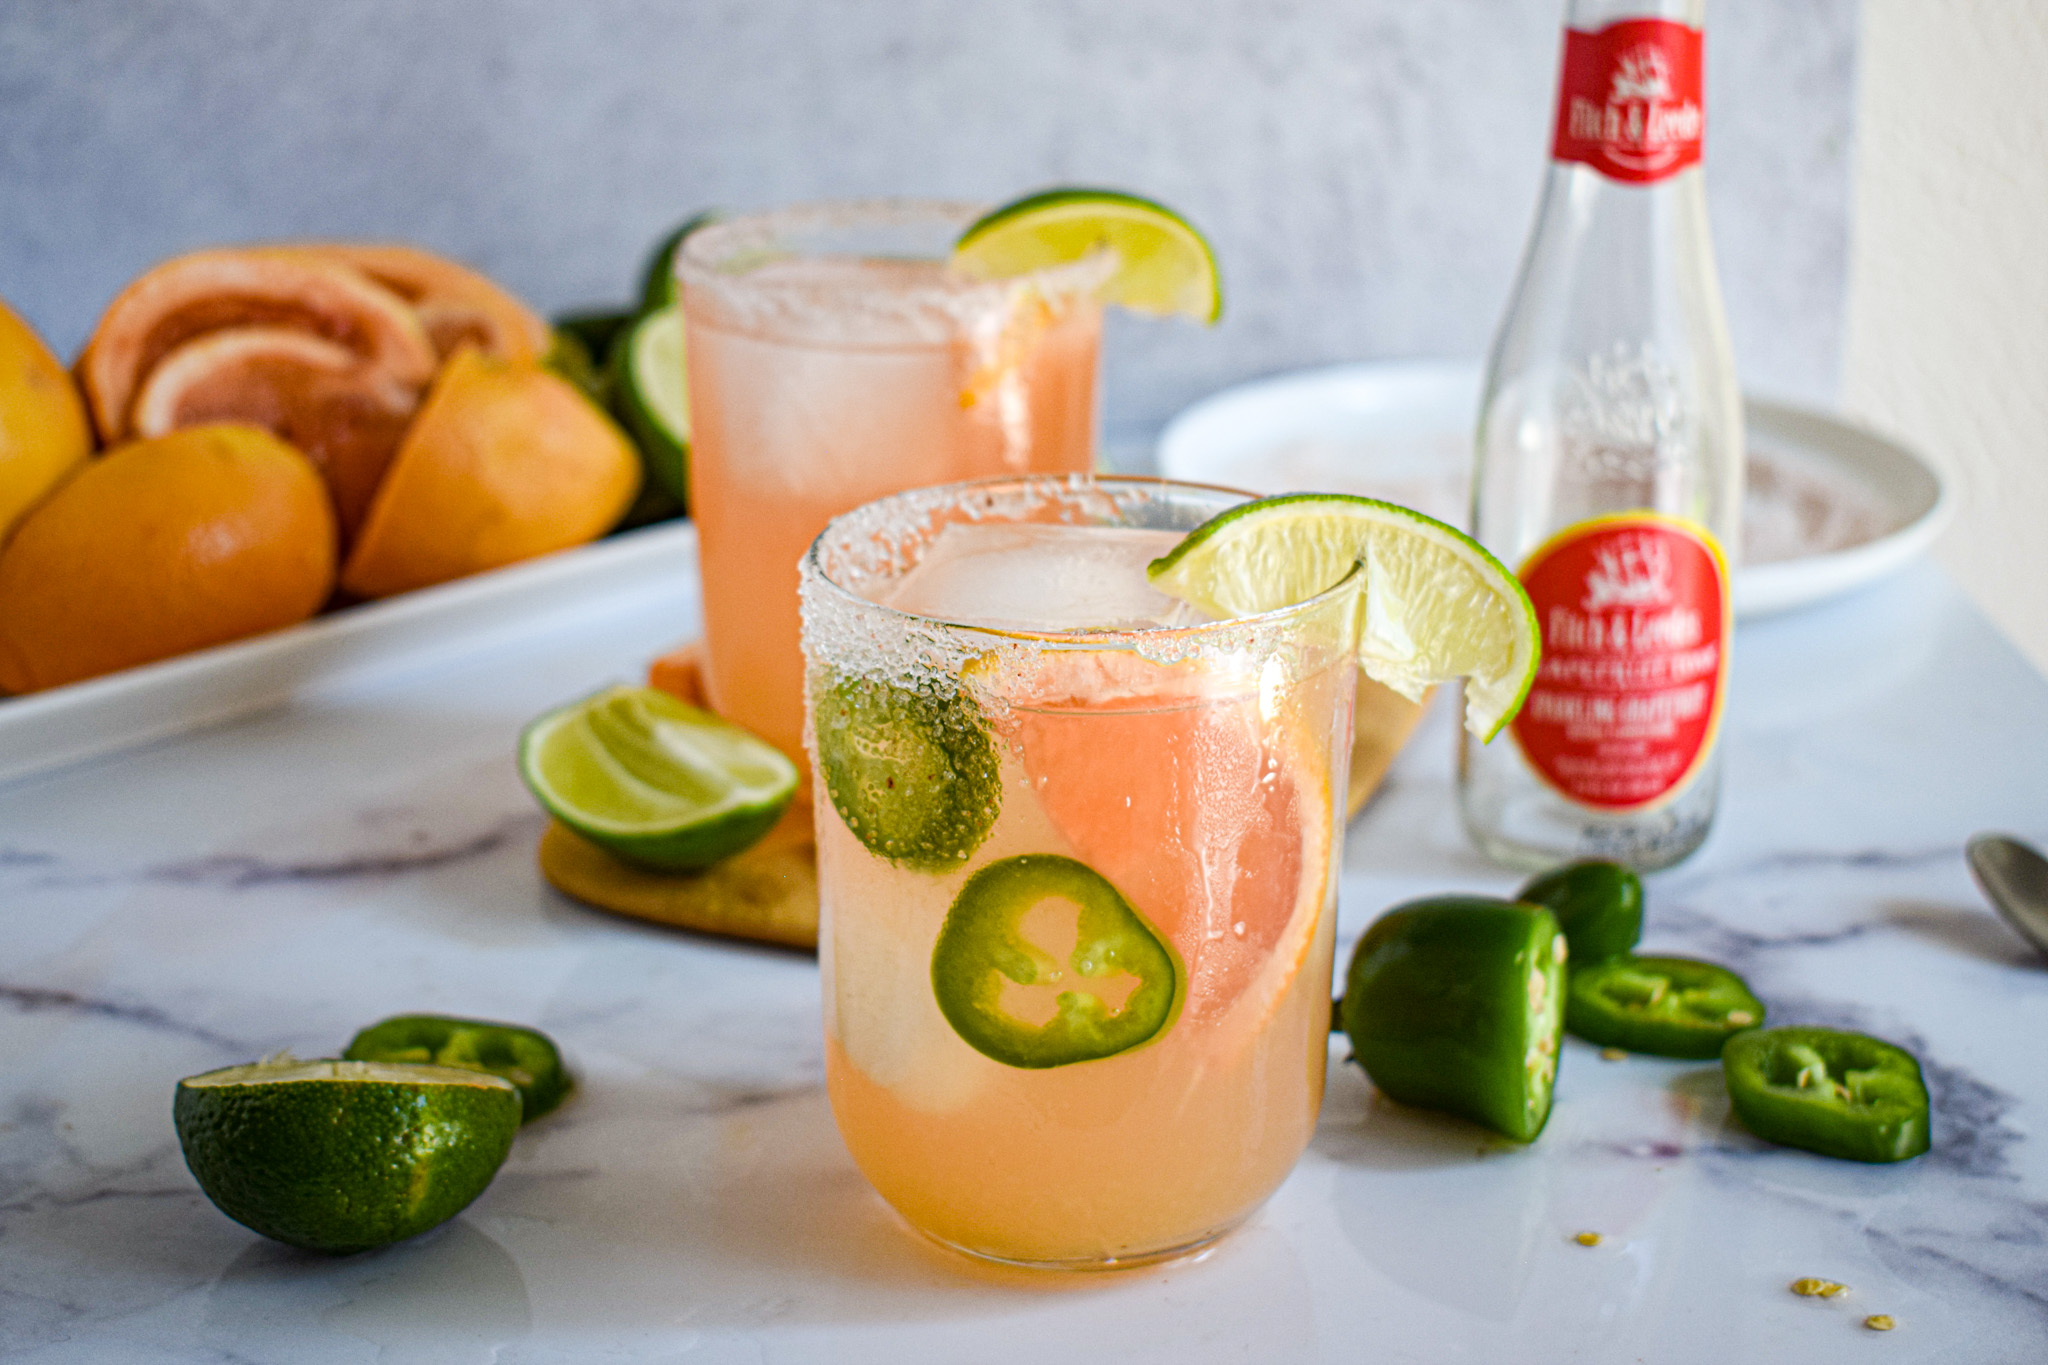 paloma cocktail with jalapeno slices